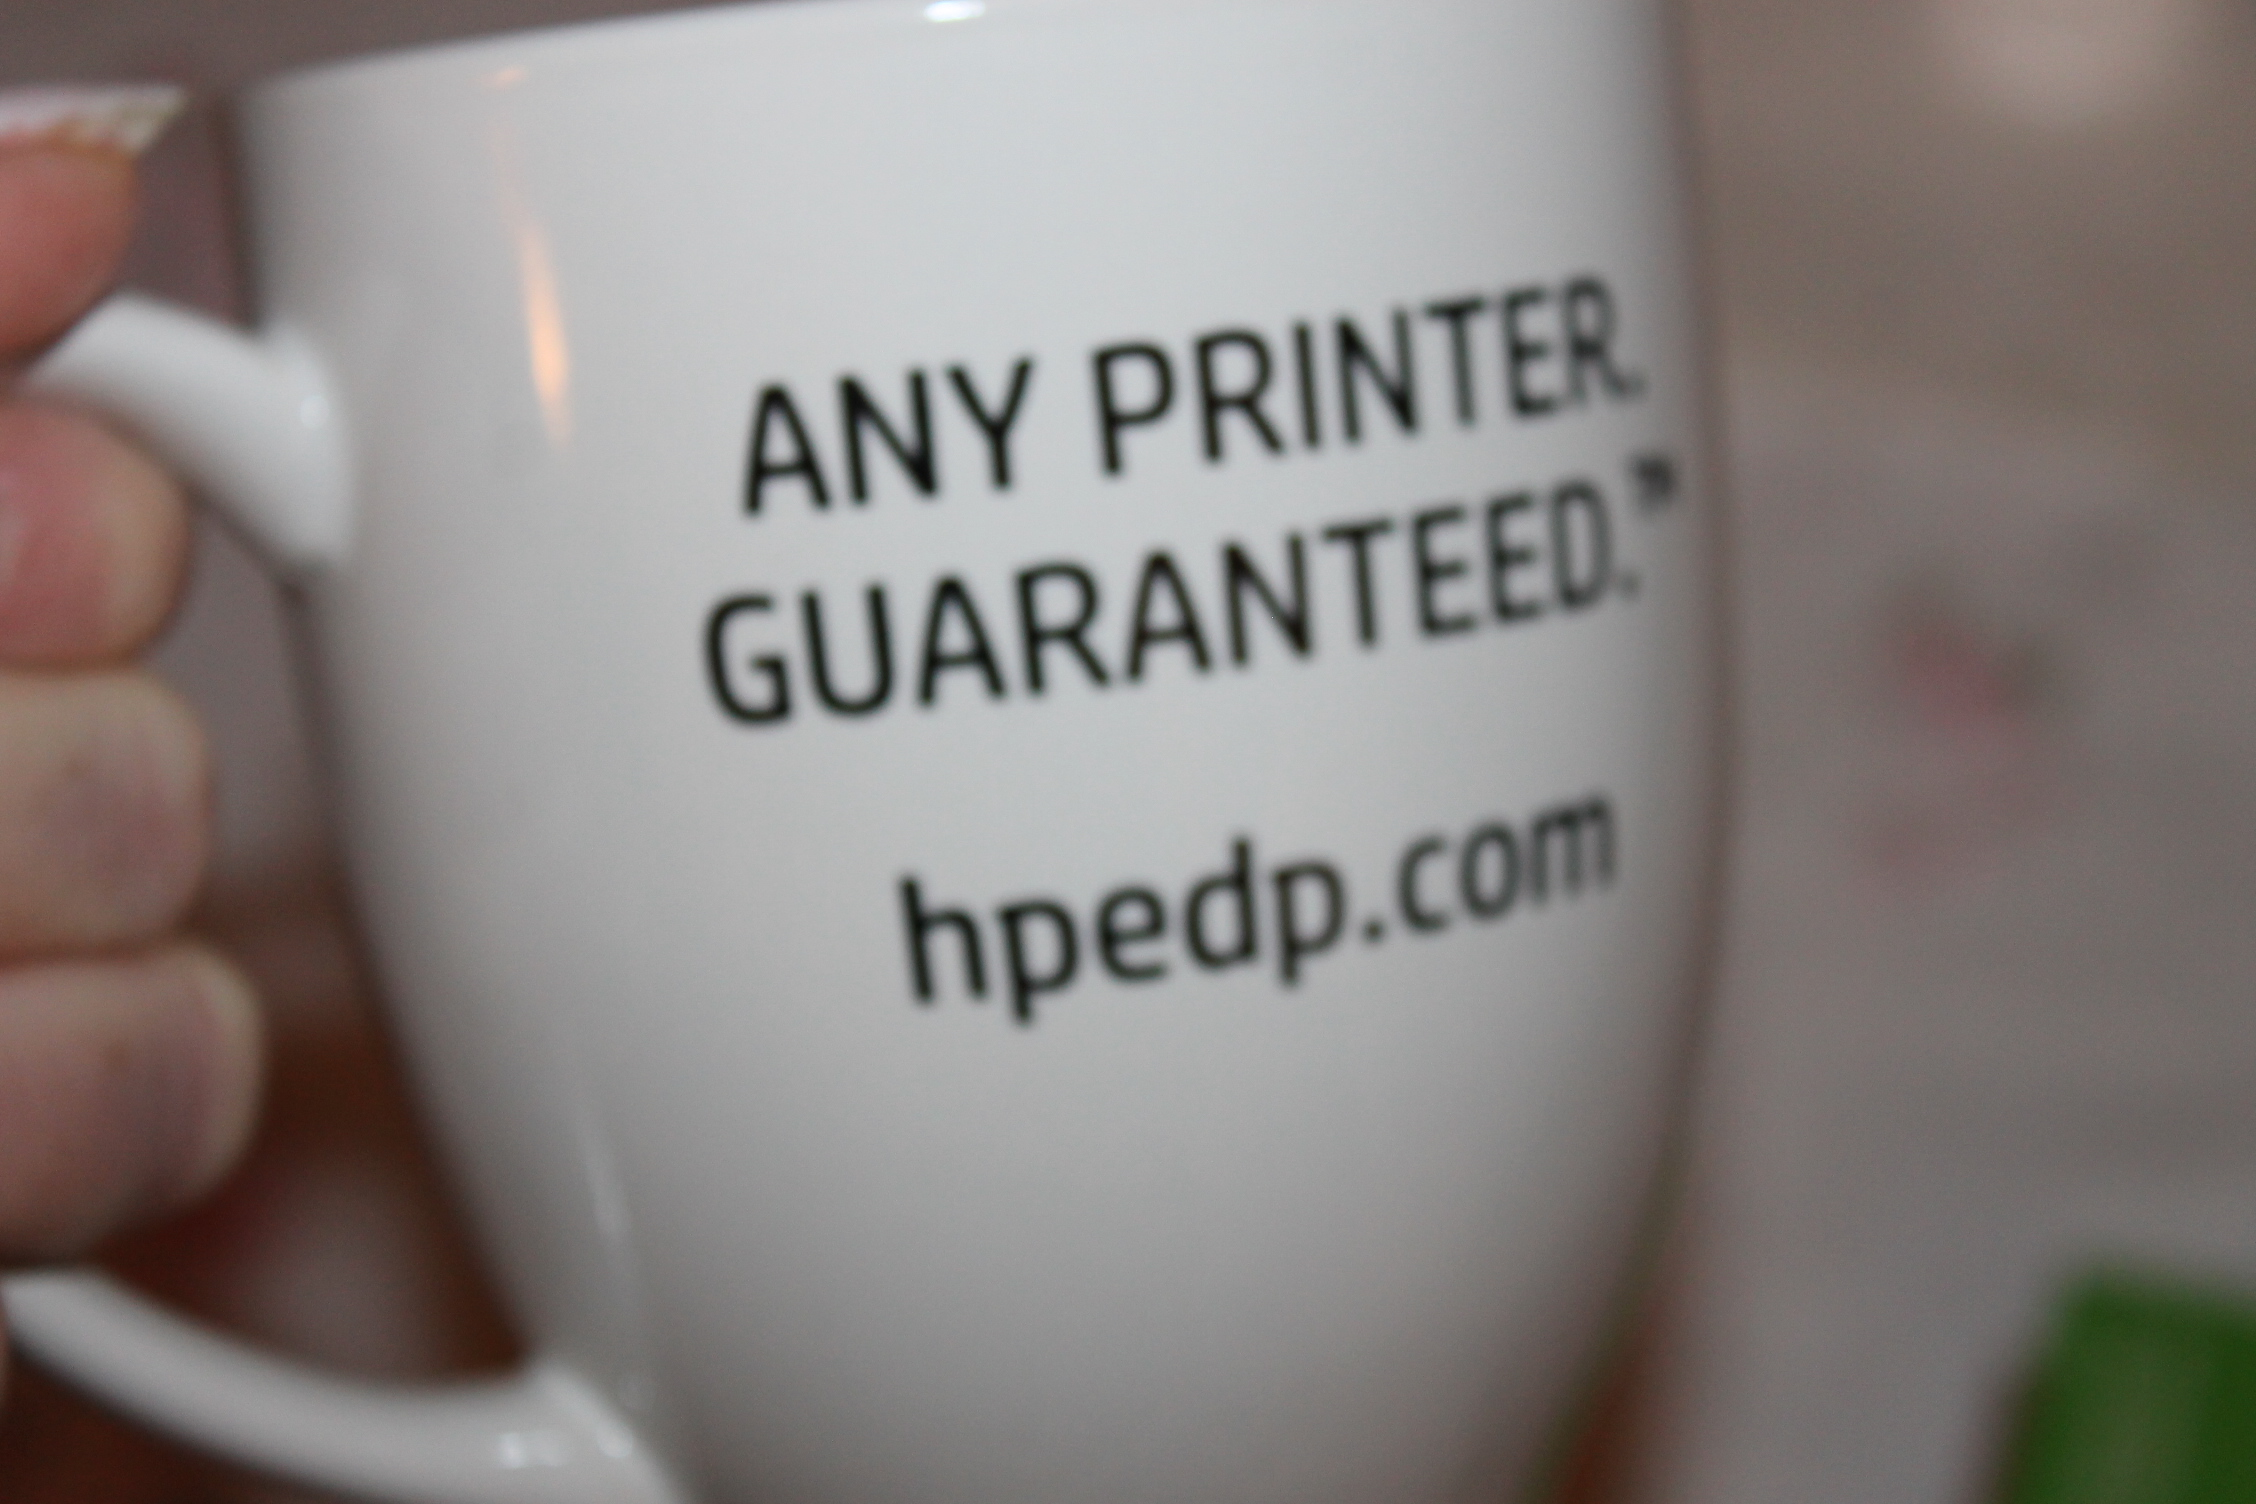 HP EcoFFICIENT Paper, High Performance